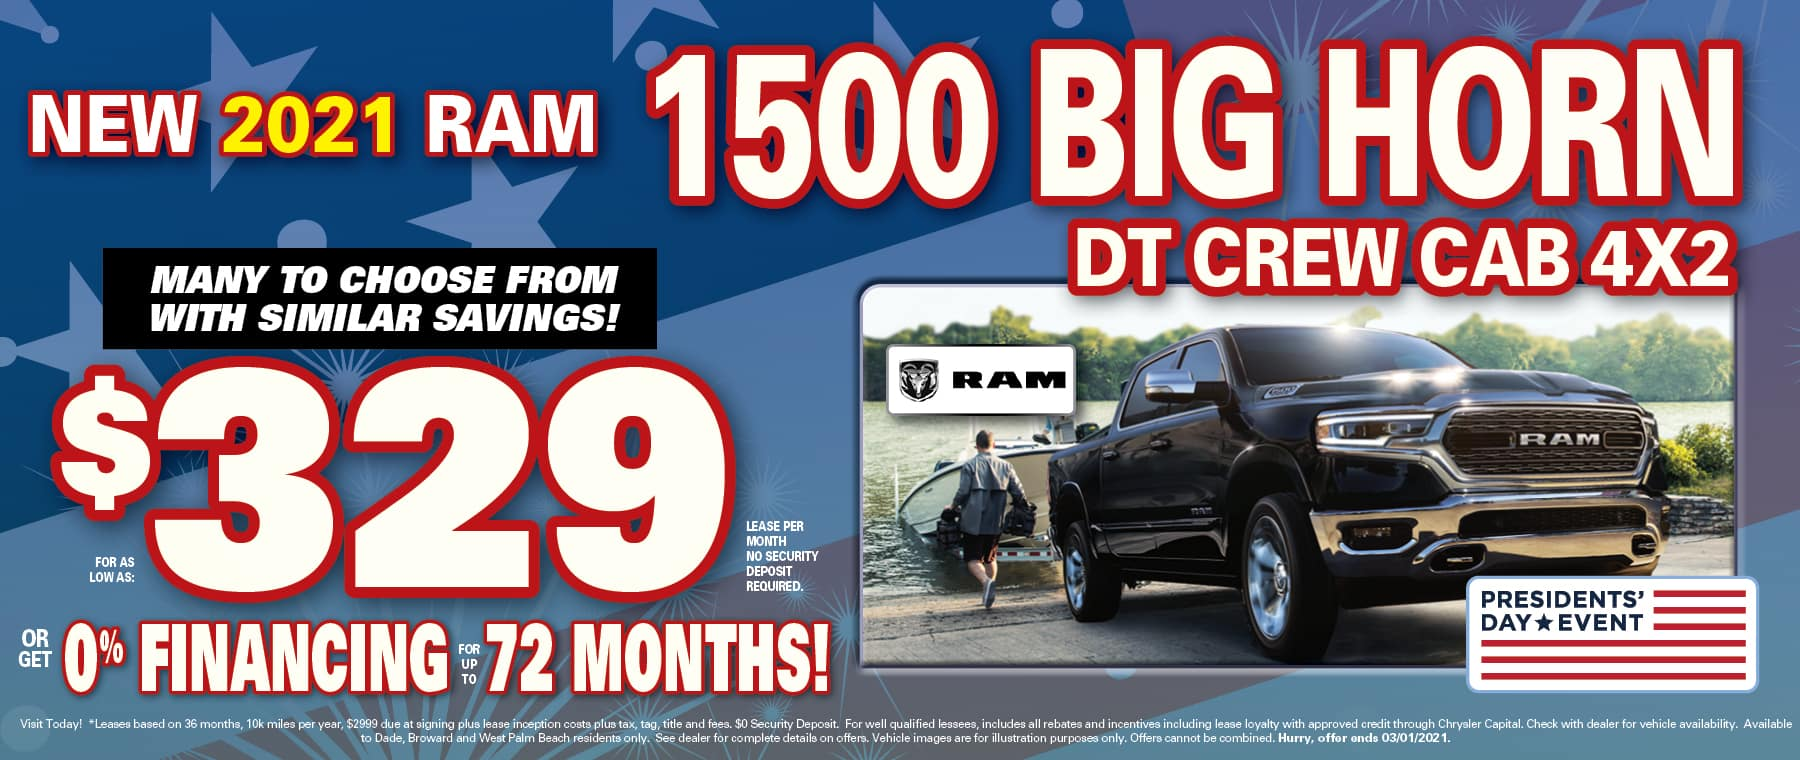 Ram Lease and 0% financing